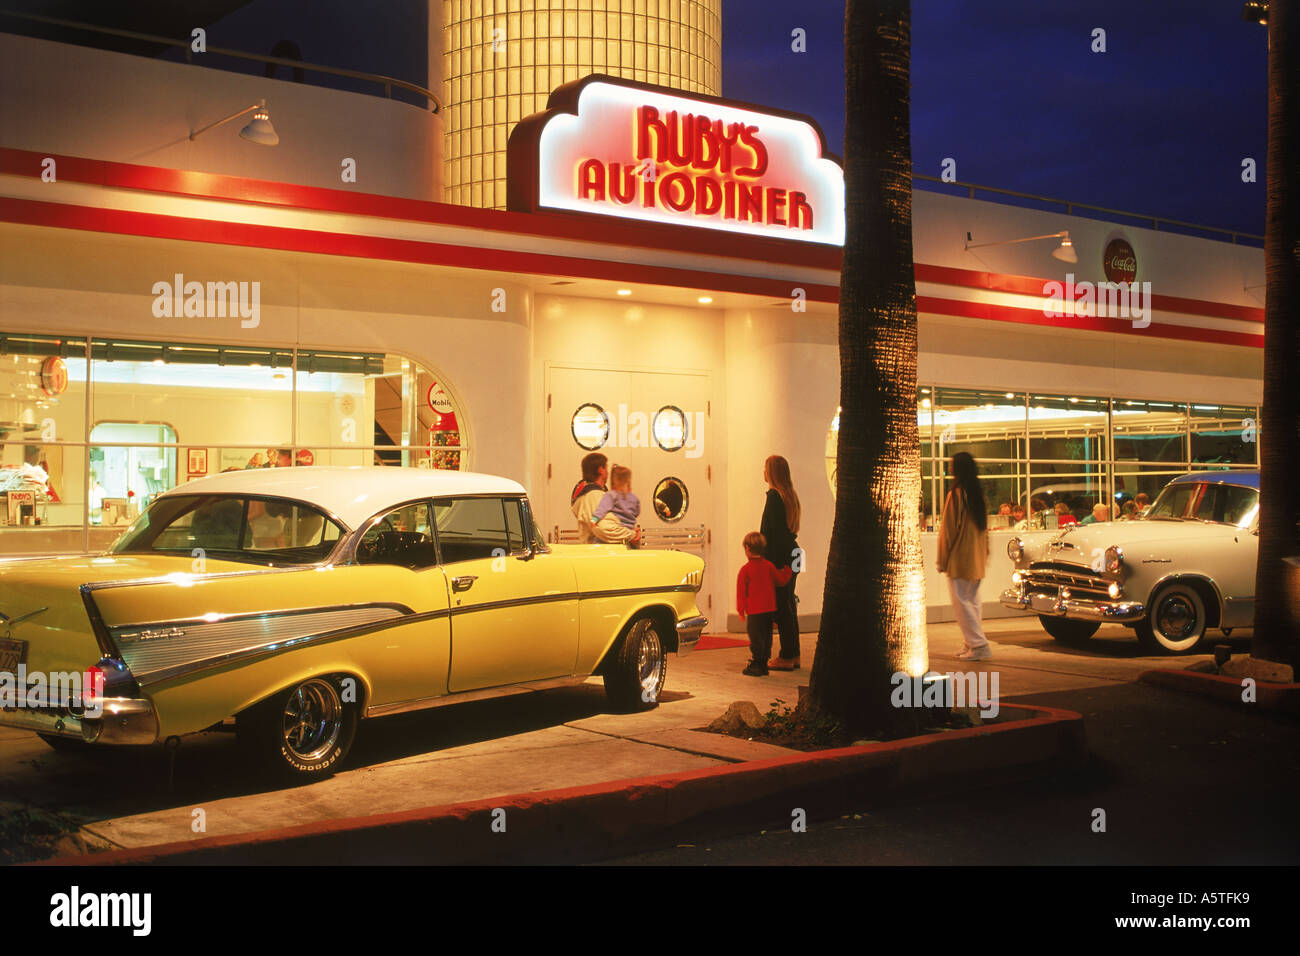 Classic Muscle Car Mobile Wallpaper Auto Diner At Night With Old Classic American Cars In